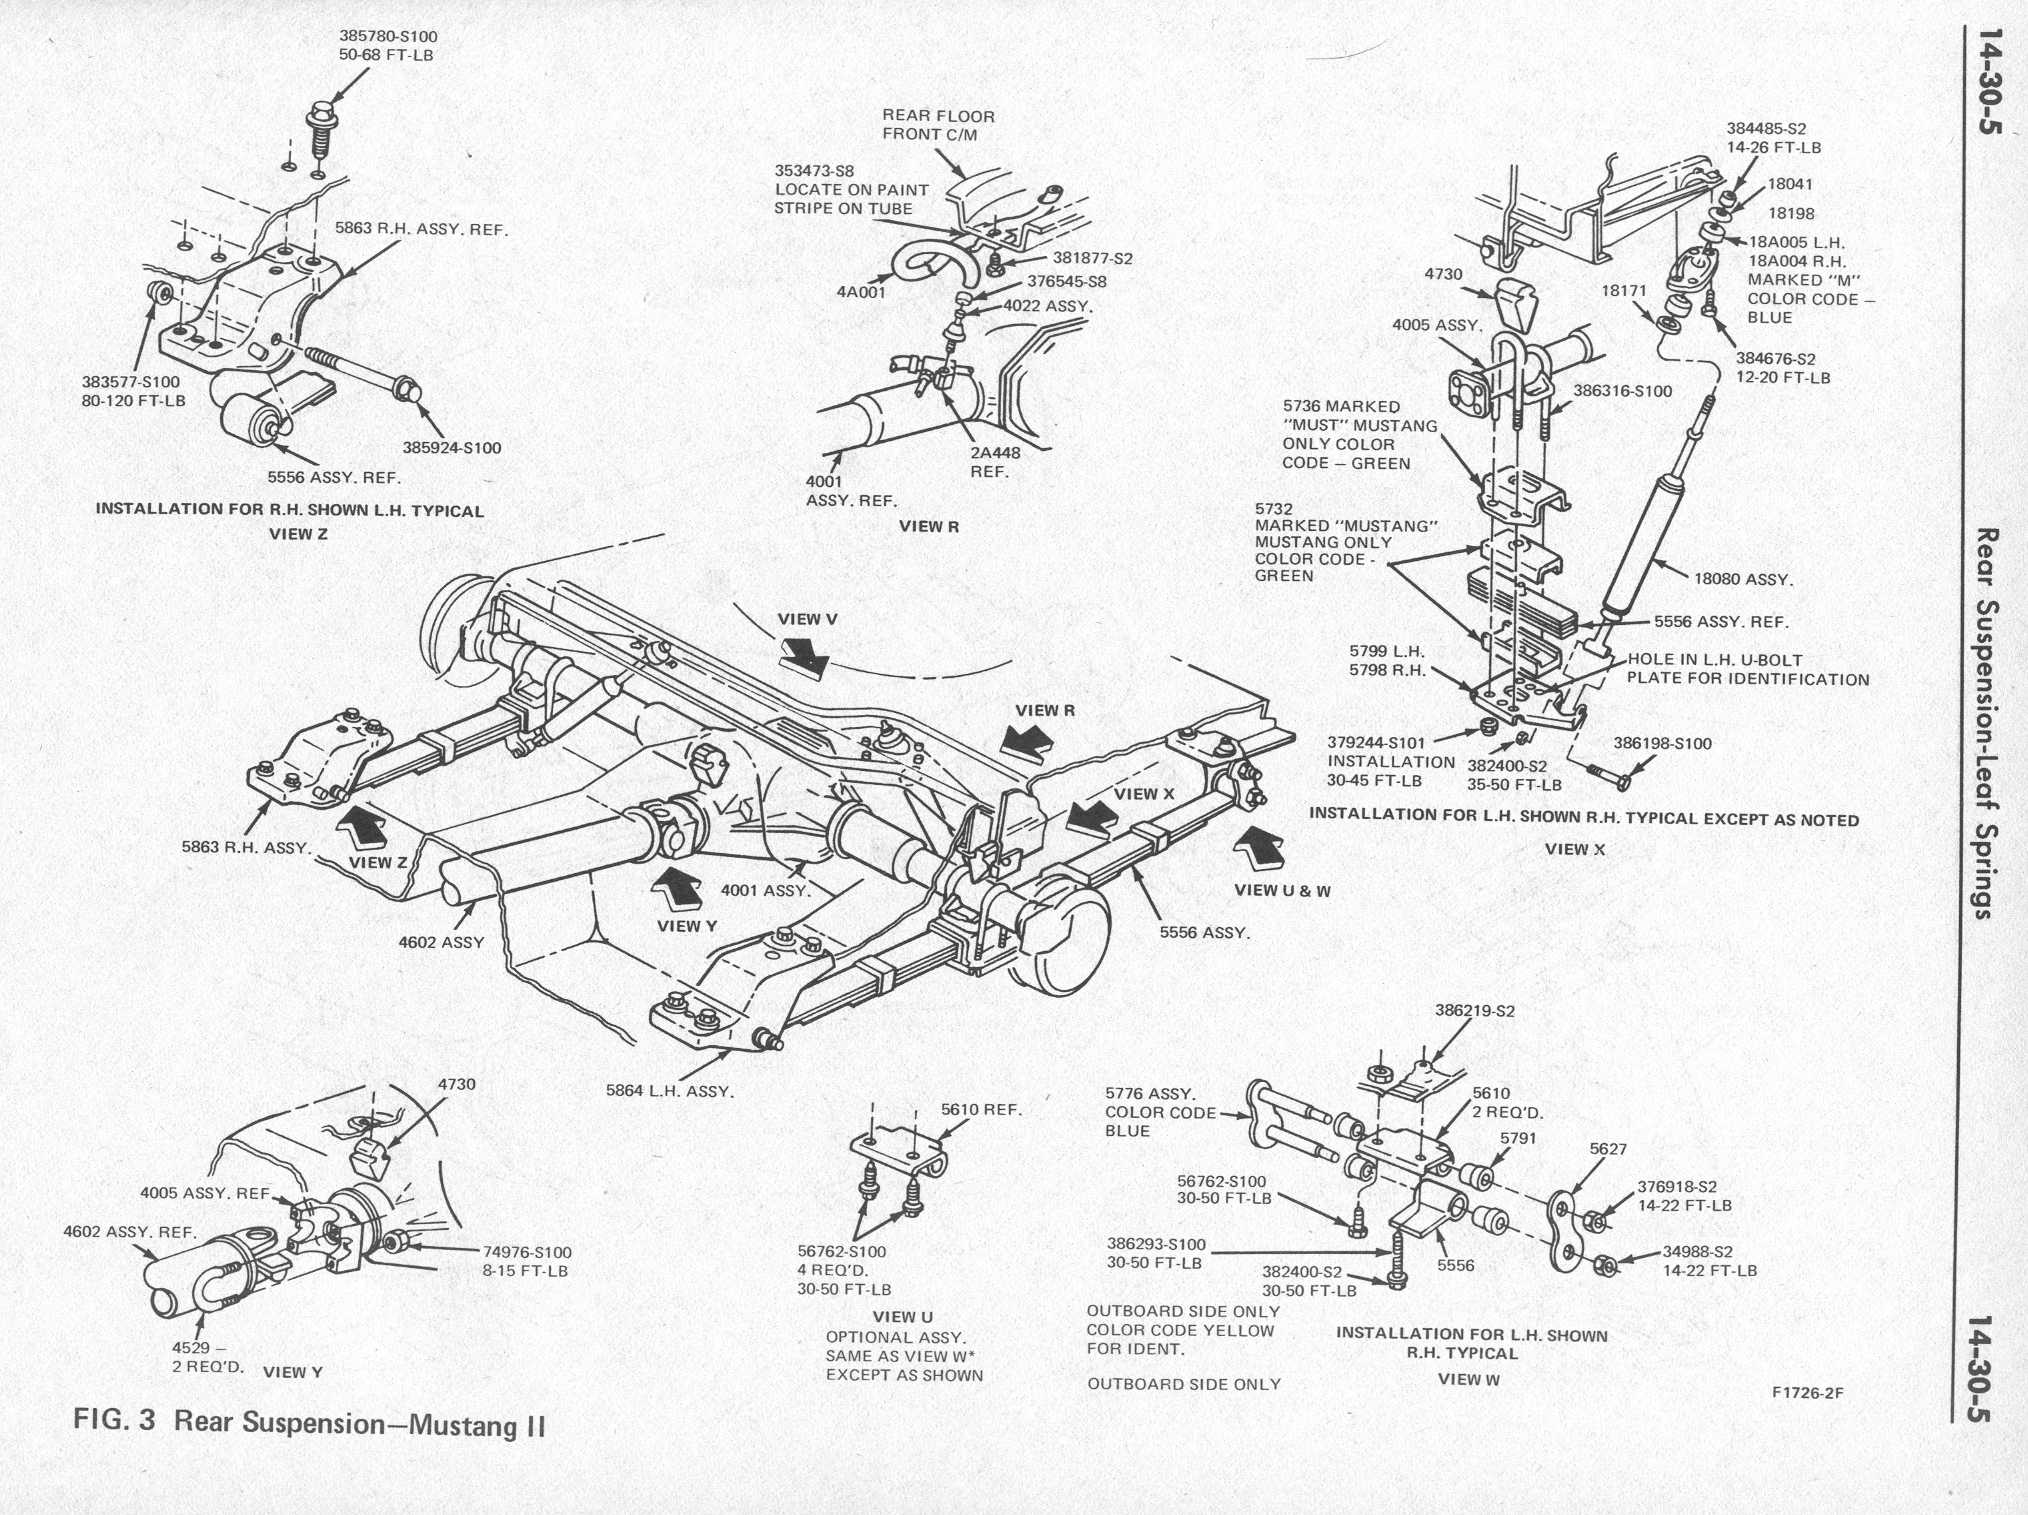 The Mustang II Organization on 5.0 mustang wiring harness, crown victoria wiring harness, 73 mustang wiring harness,